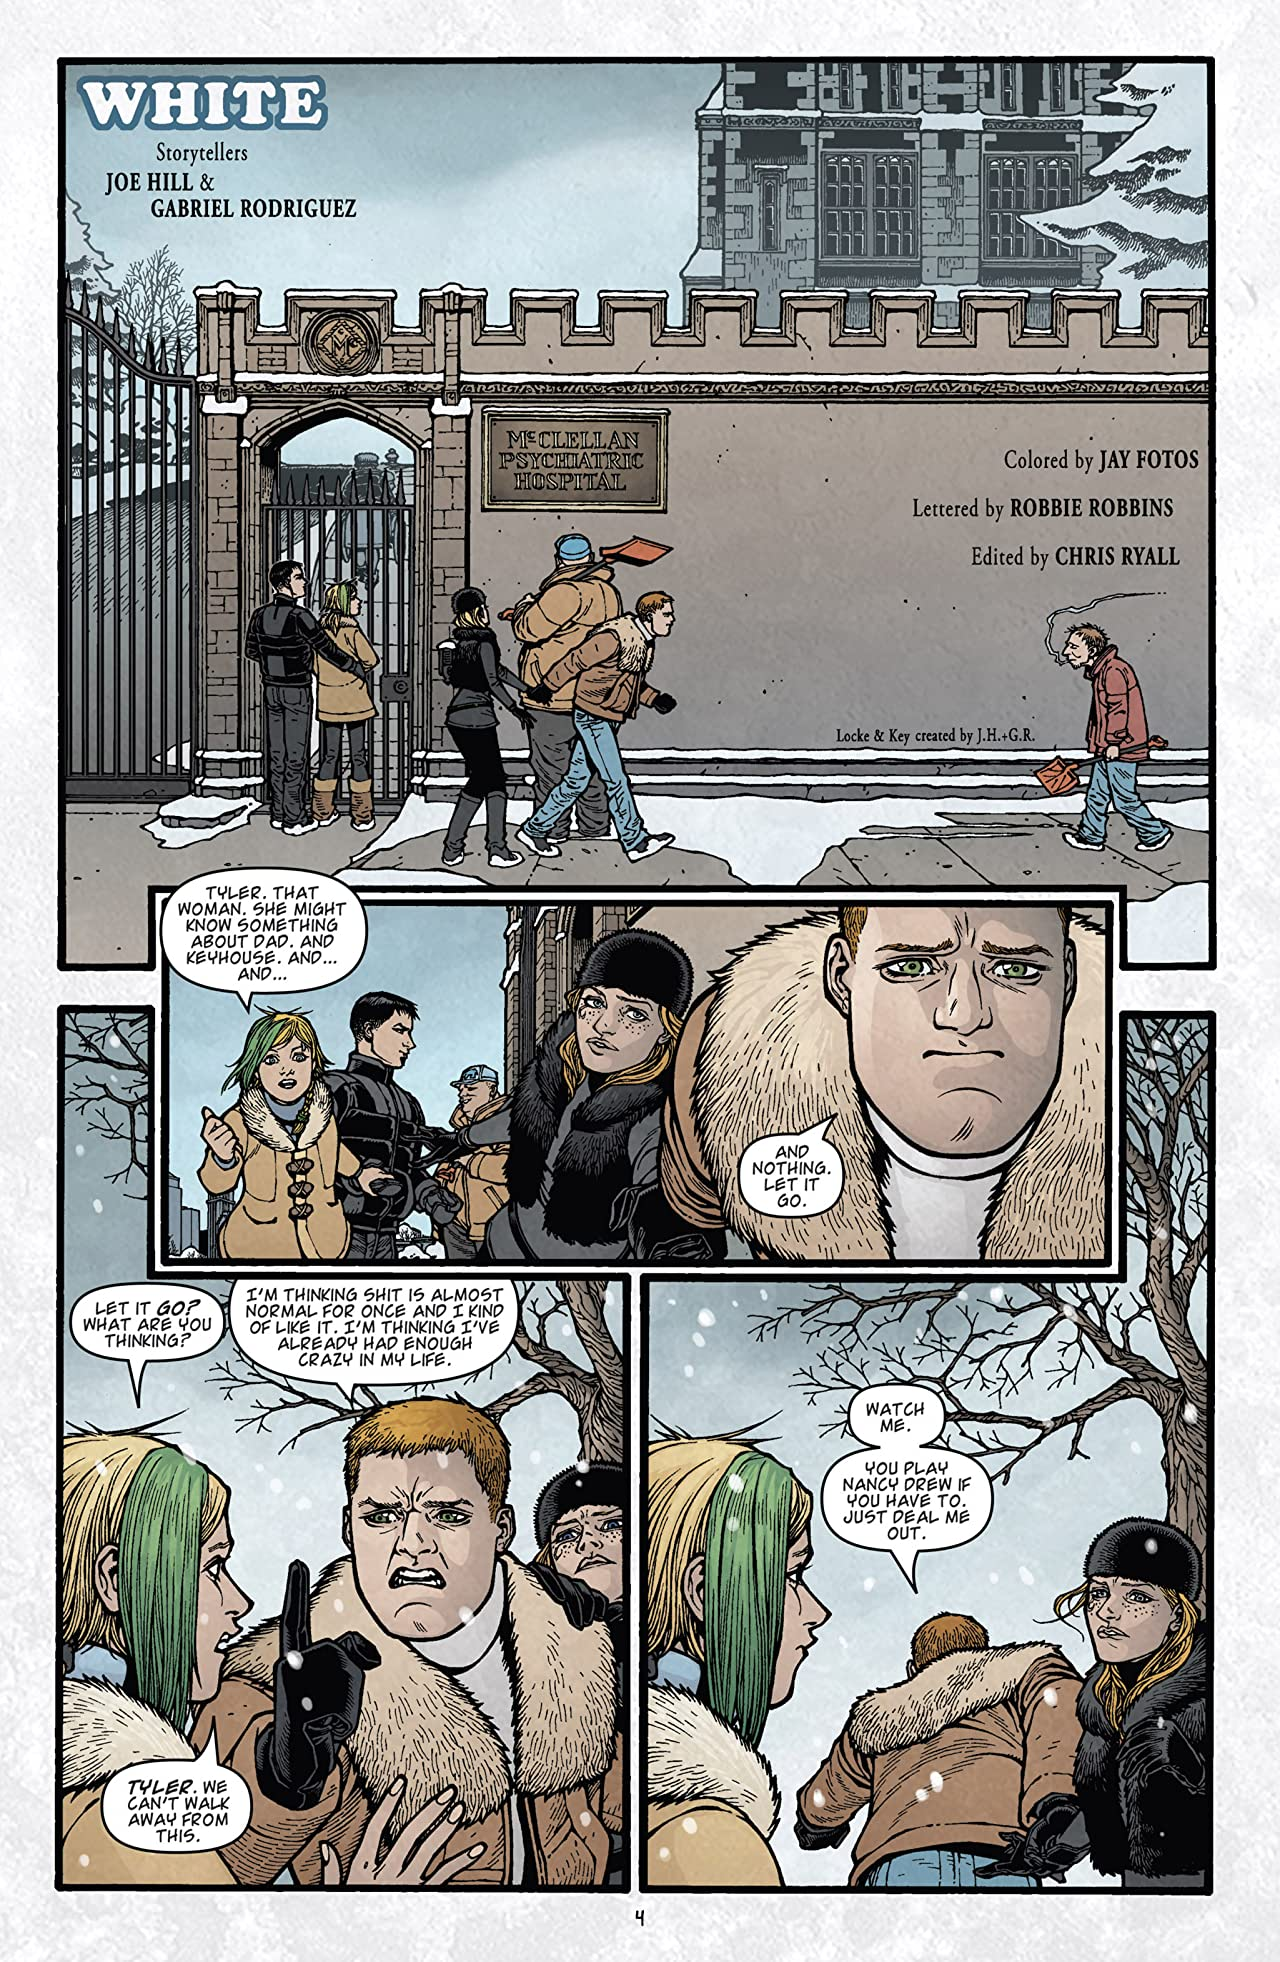 Locke & Key: Keys To the Kingdom #2 (of 6)